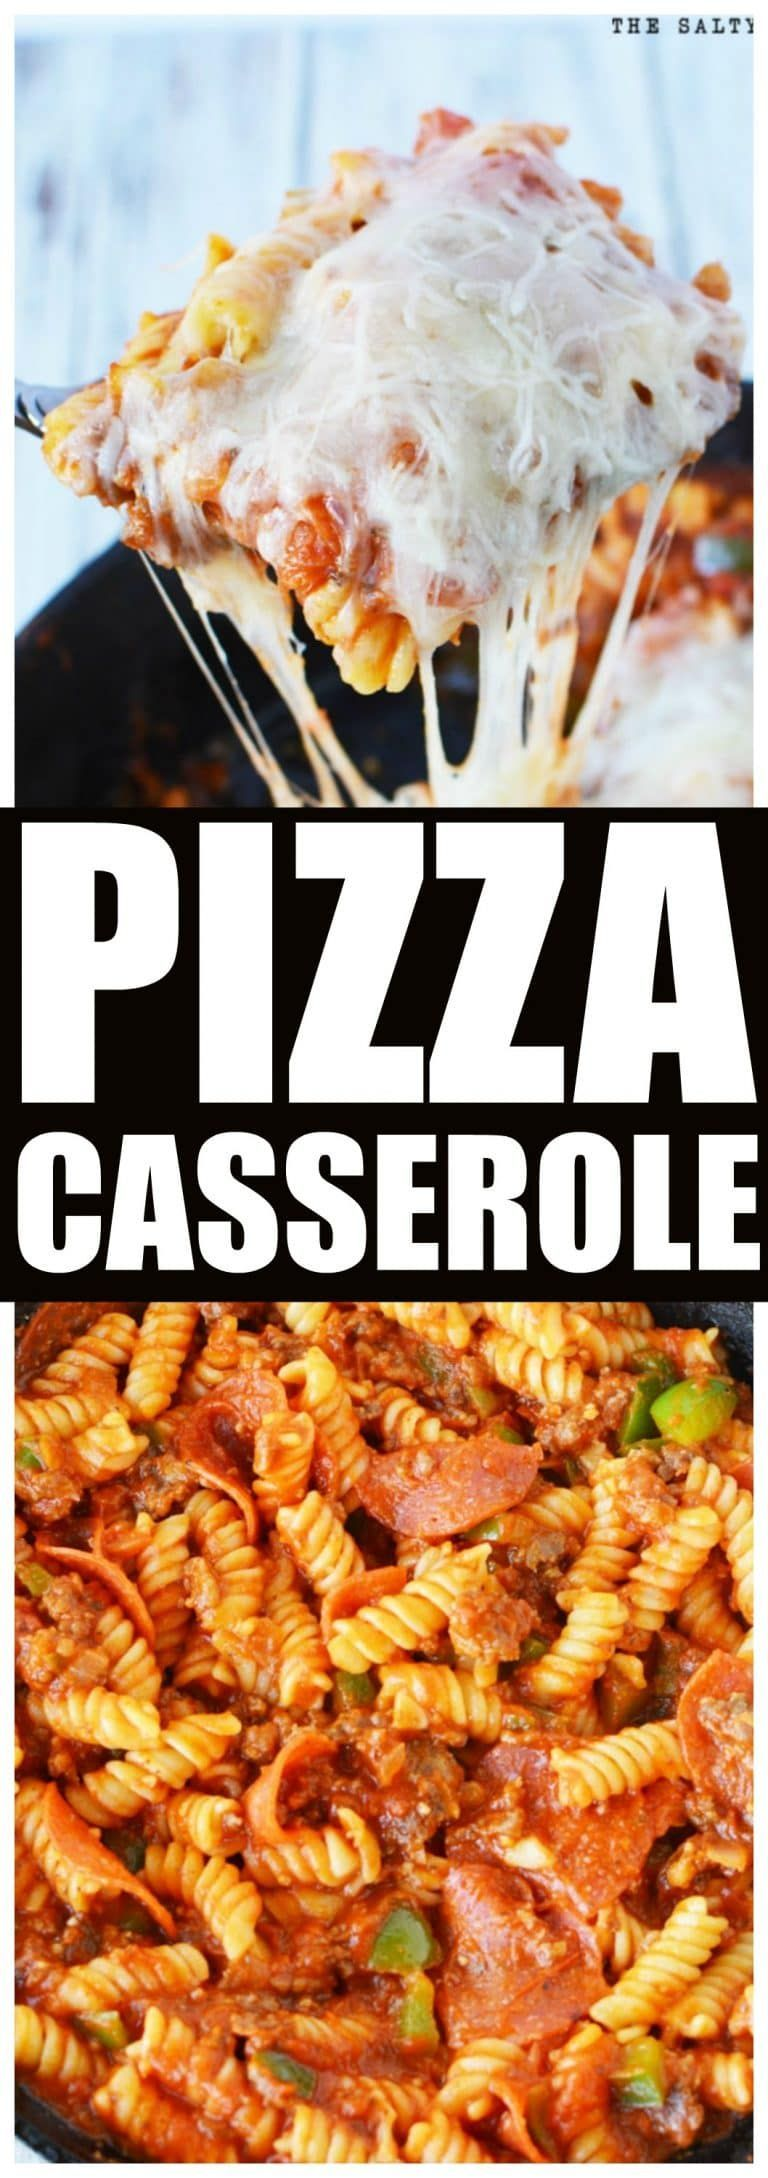 Casserole Pizza Casserole Hot Dish is an incredible pizza flavor that is FAST and EASY for any day of the week. KID FAVORITE!Pizza Casserole Hot Dish is an incredible pizza flavor that is FAST and EASY for any day of the week. KID FAVORITE!